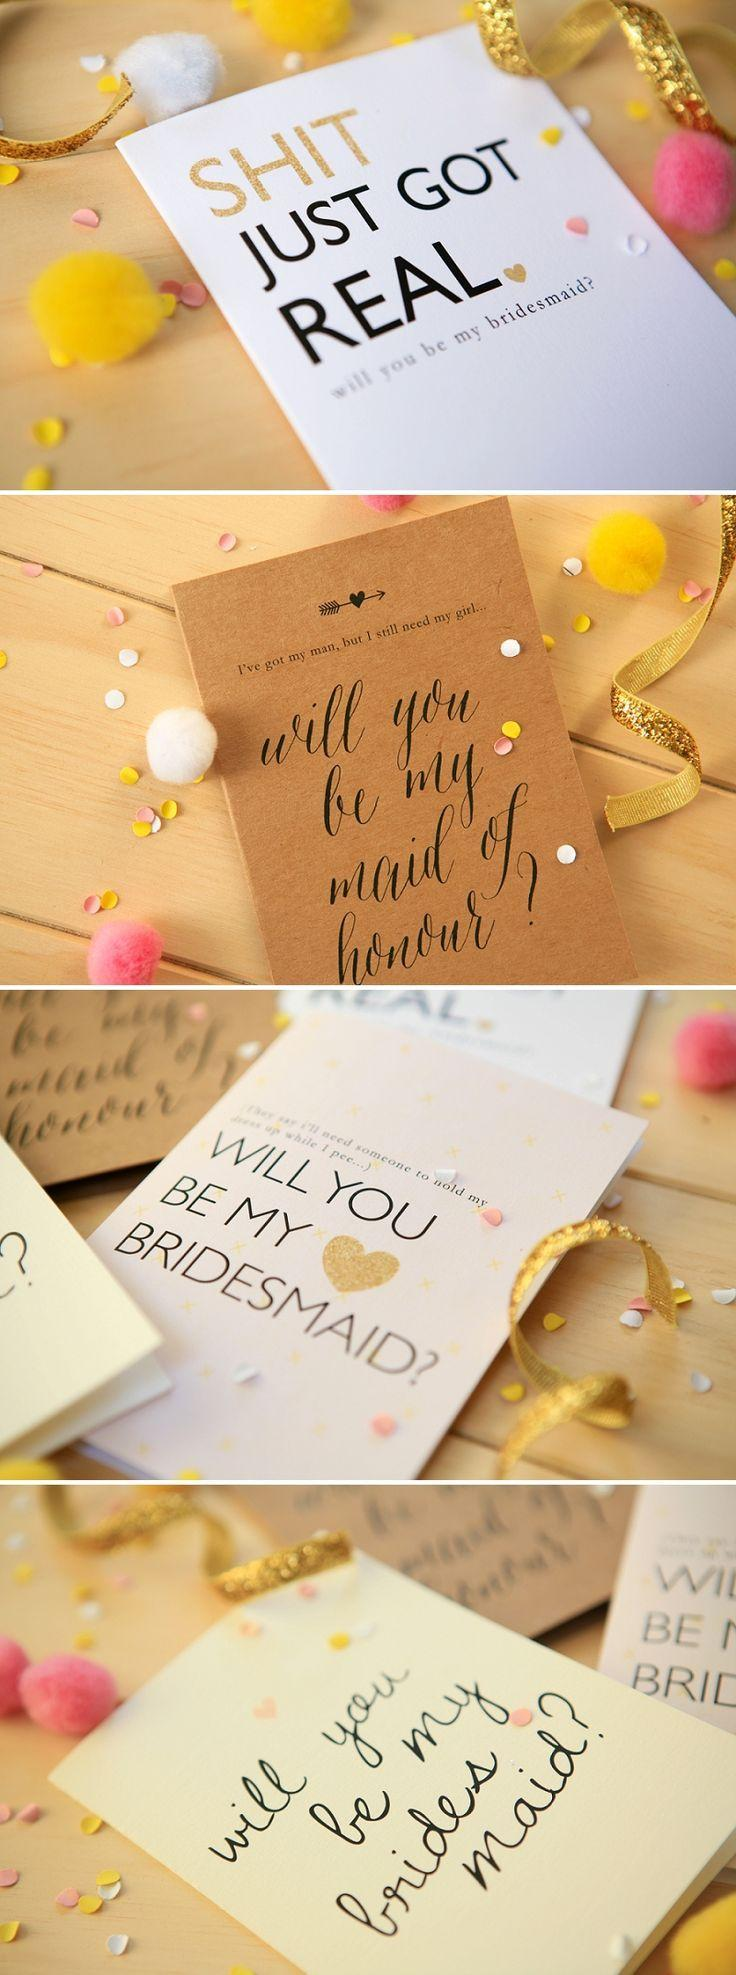 Wedding - FREE Will You Be My Bridesmaid Printables Exclusive To P&L!